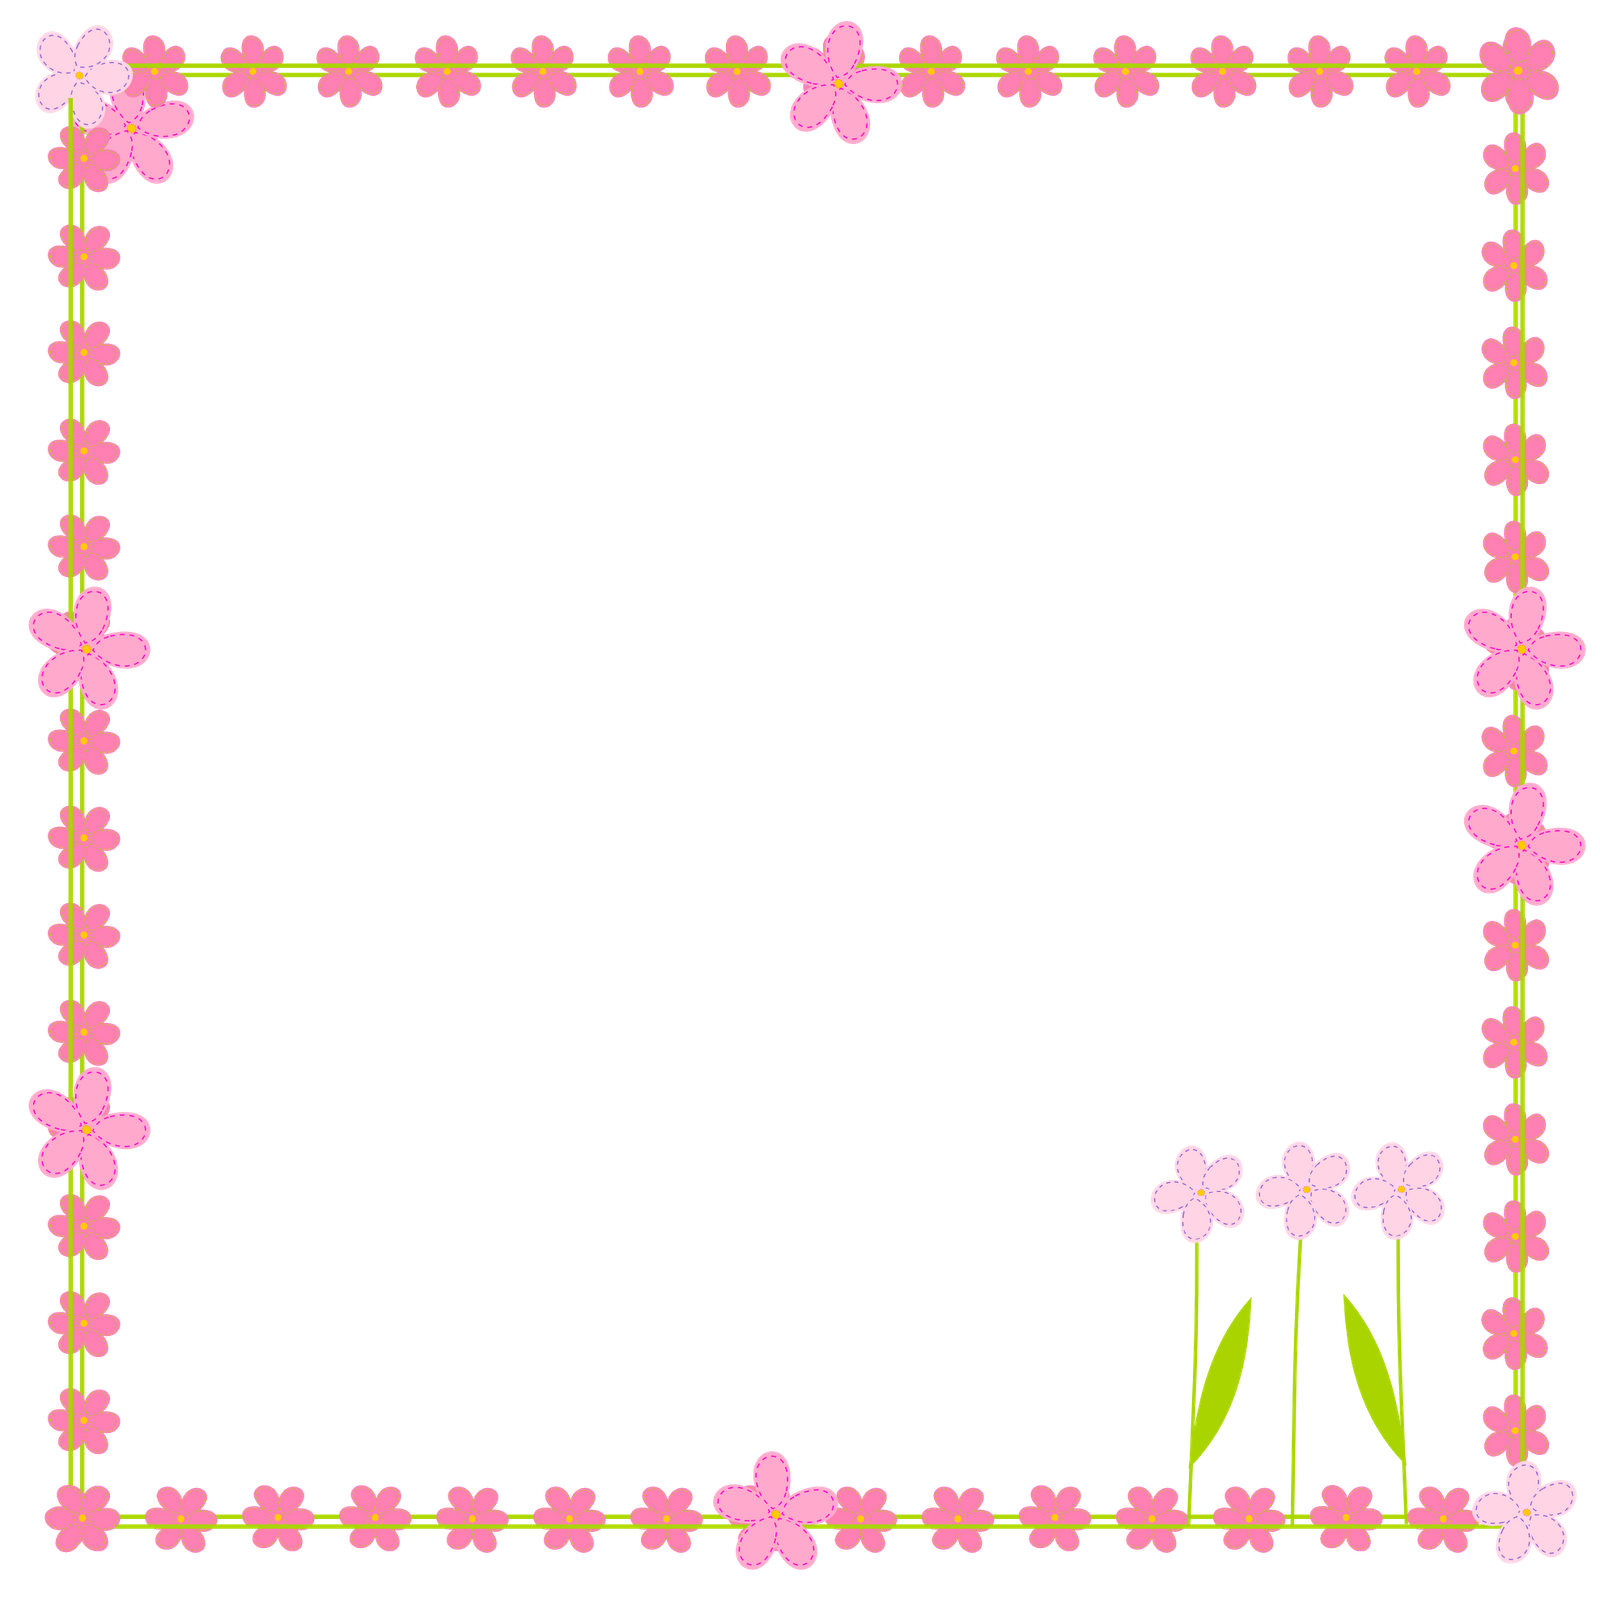 1600x1599 Flowers Border Clipart